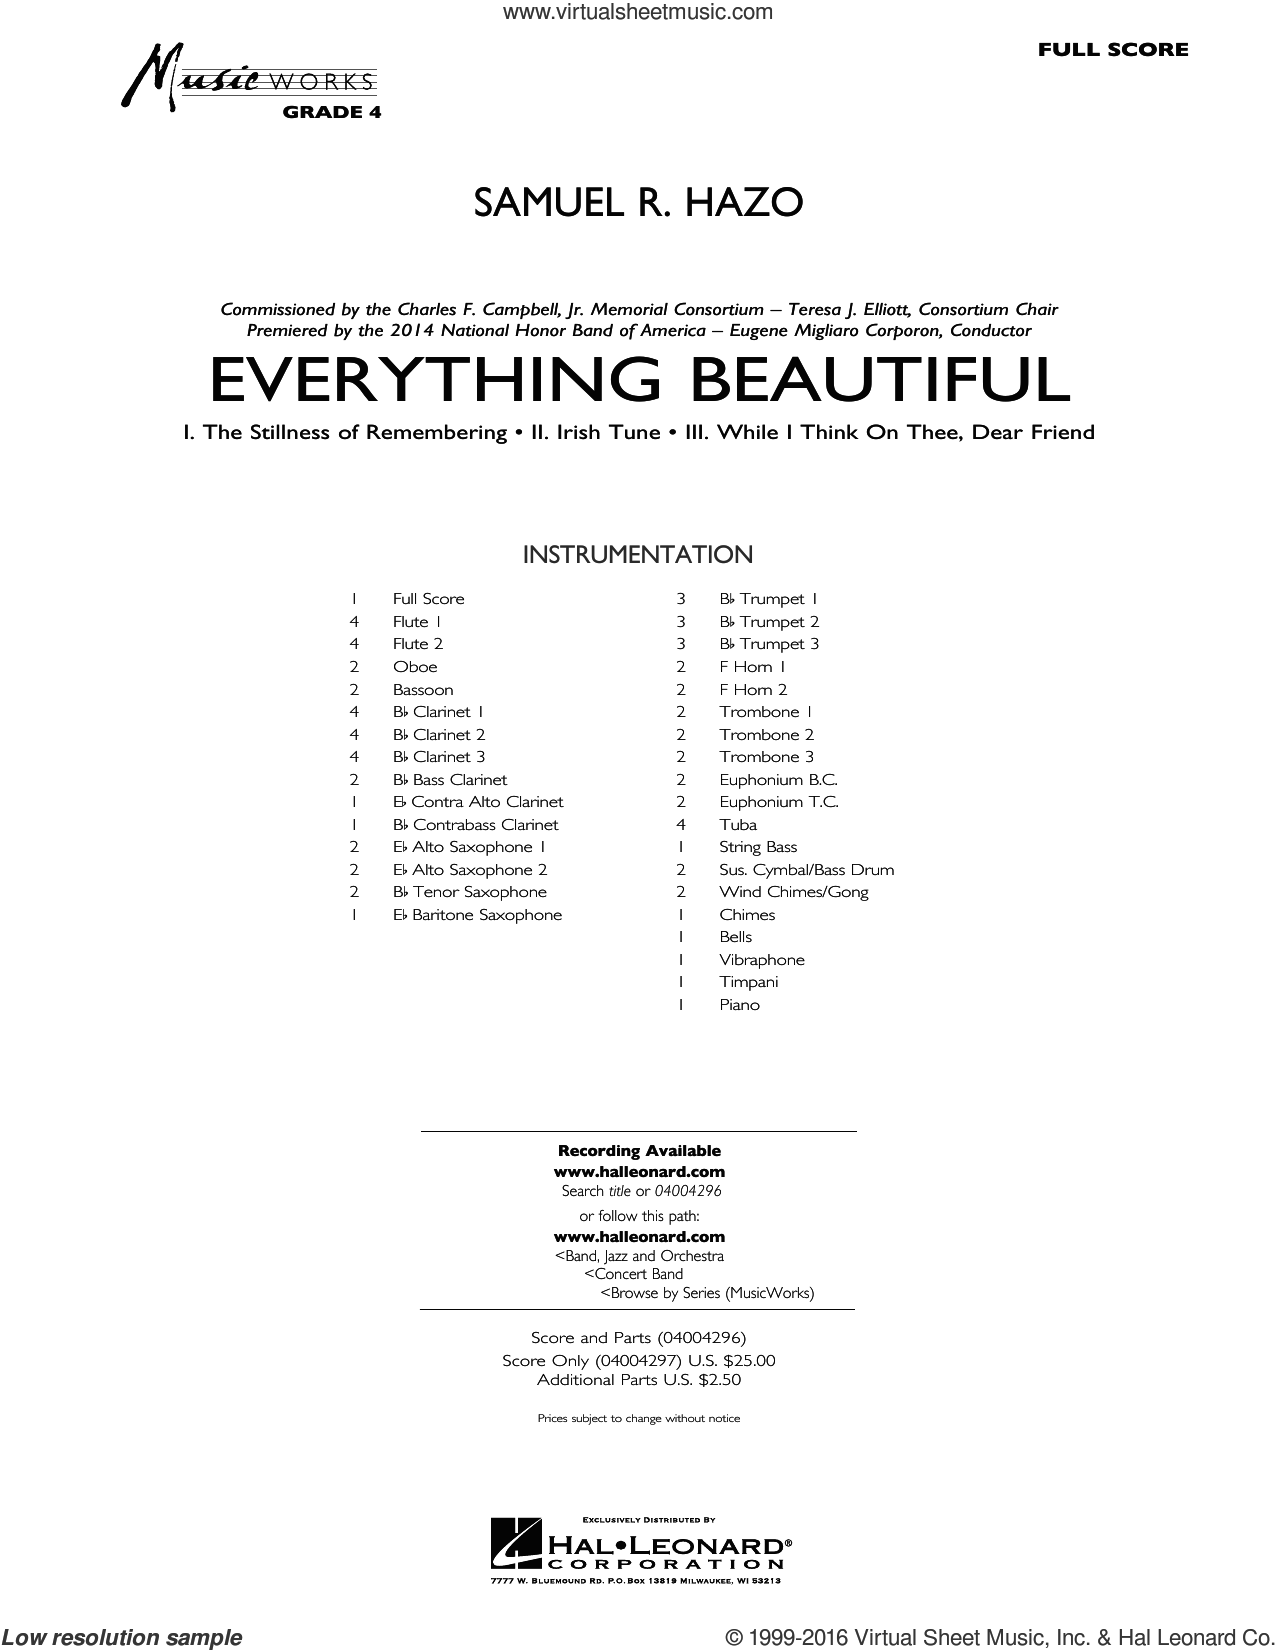 Everything Beautiful (COMPLETE) sheet music for concert band by Samuel R. Hazo